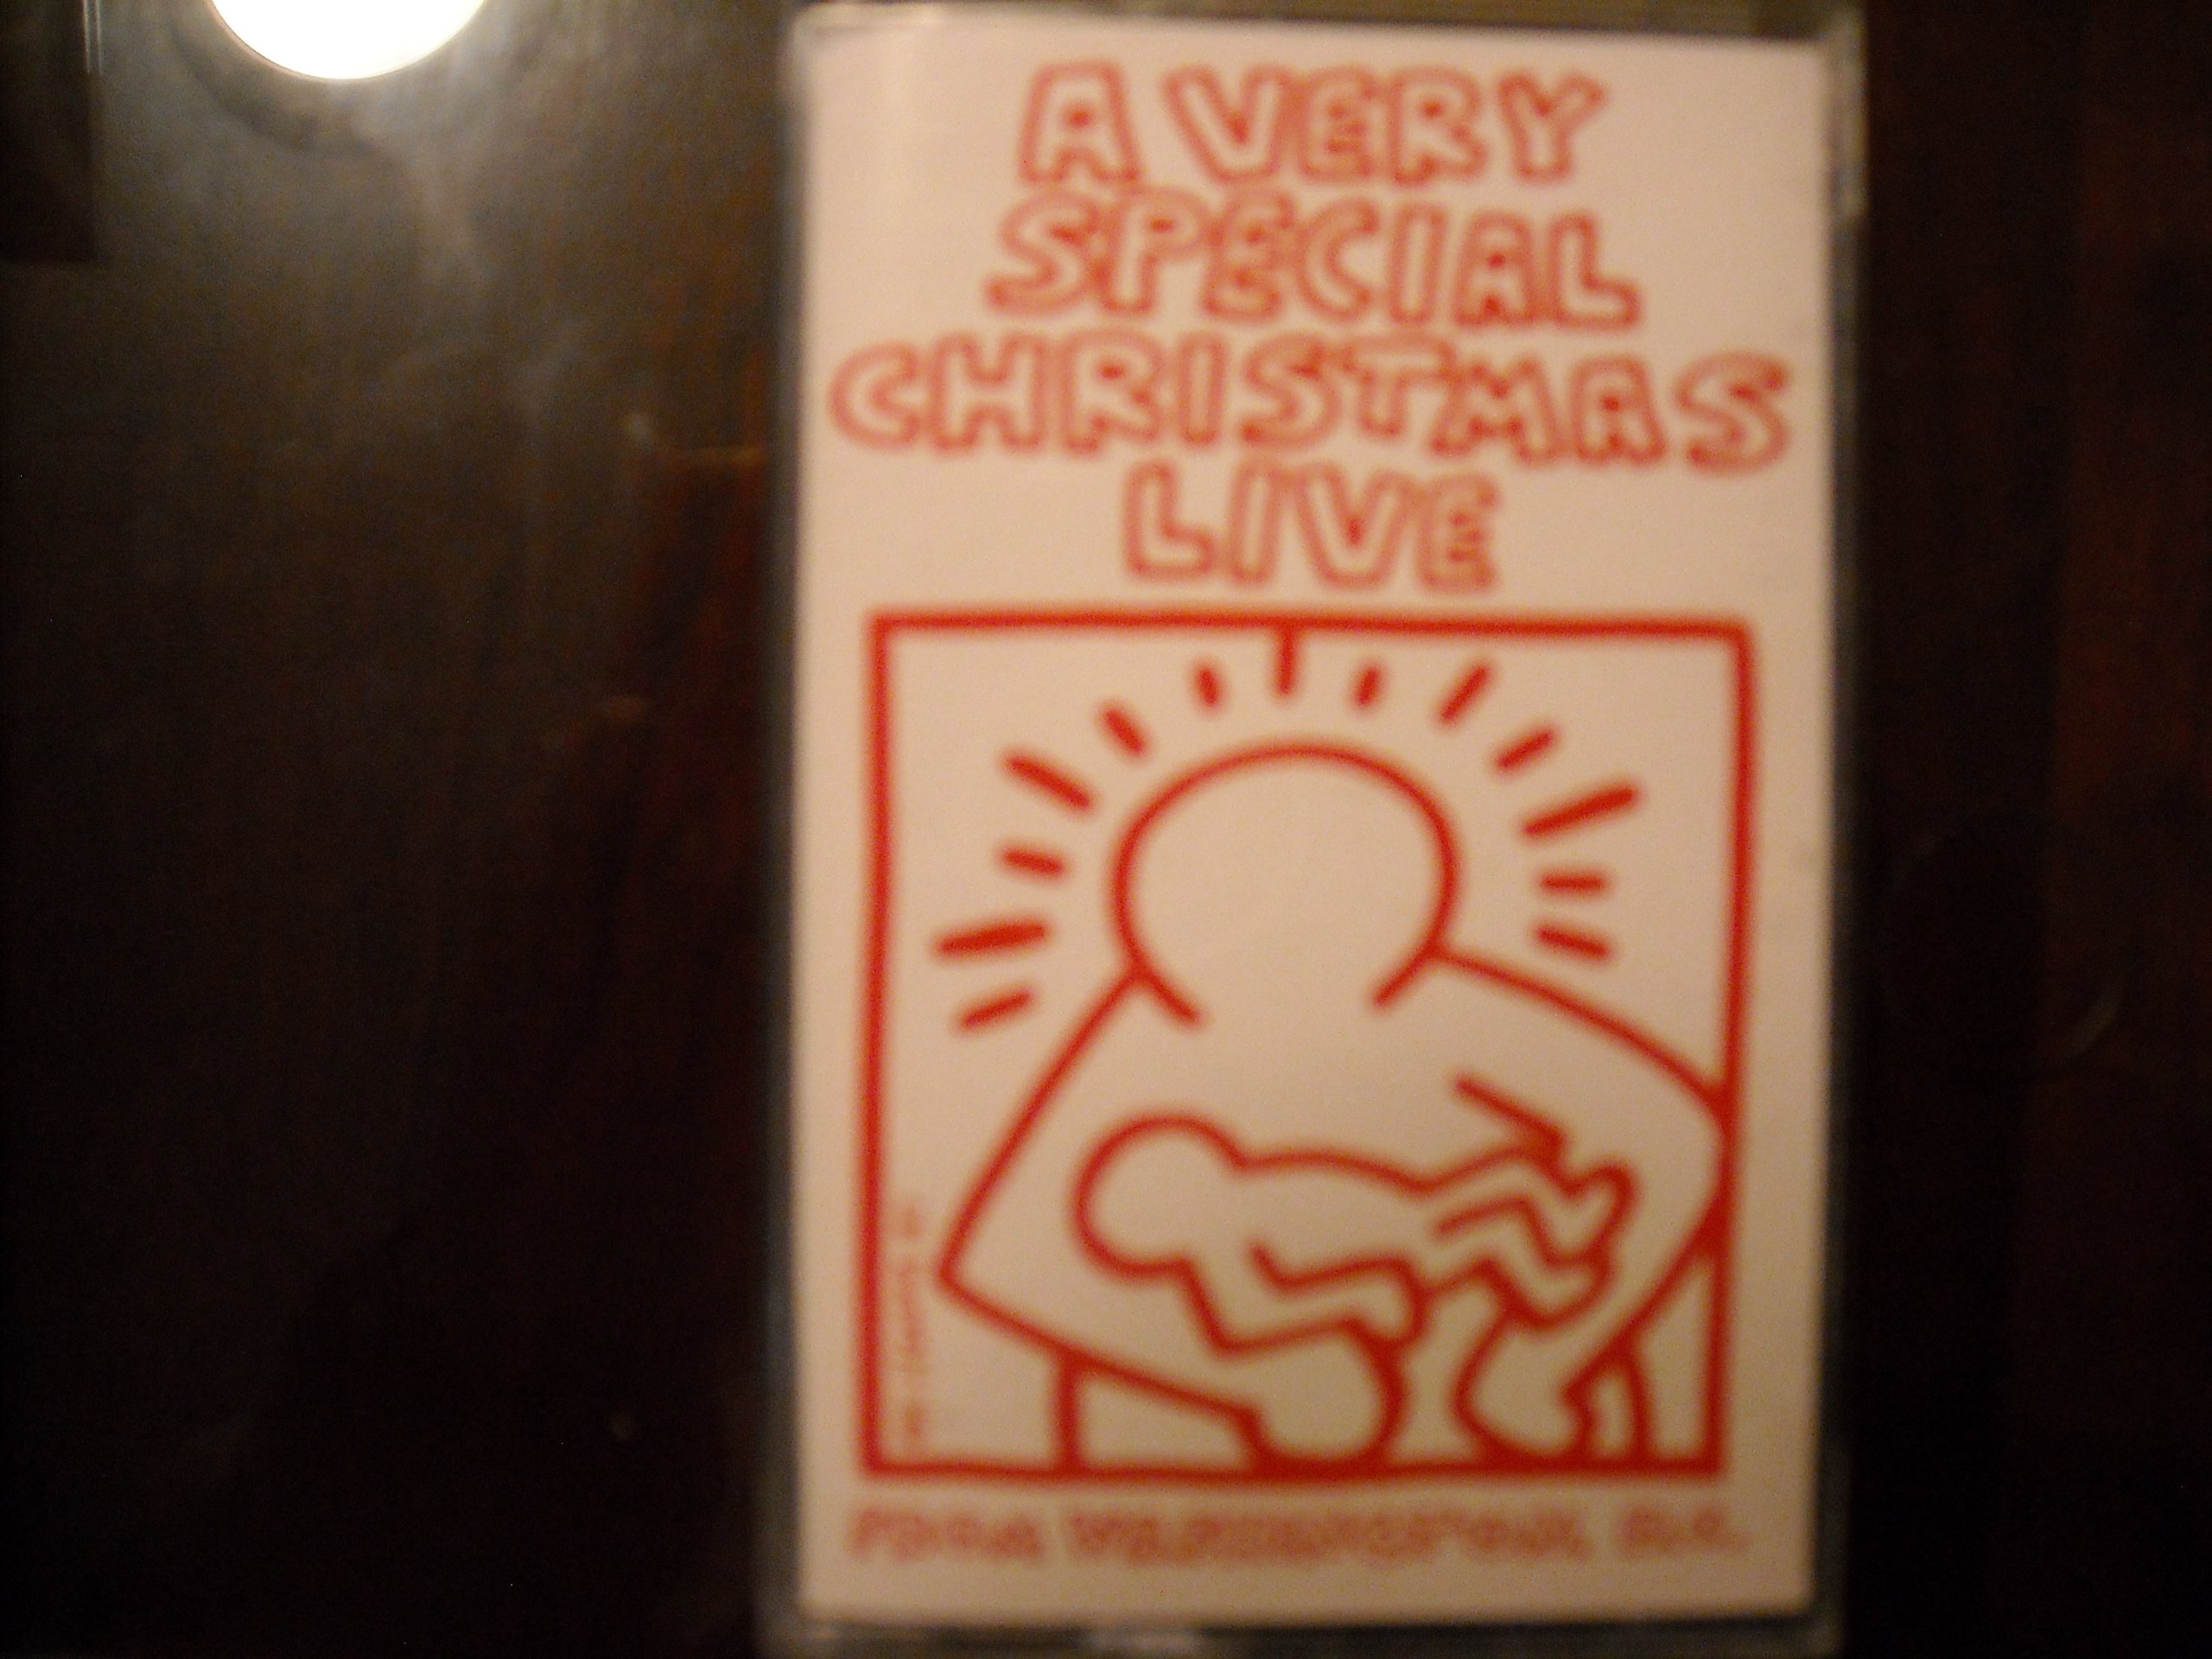 Very Special Christmas 4: Live by Interscope Records